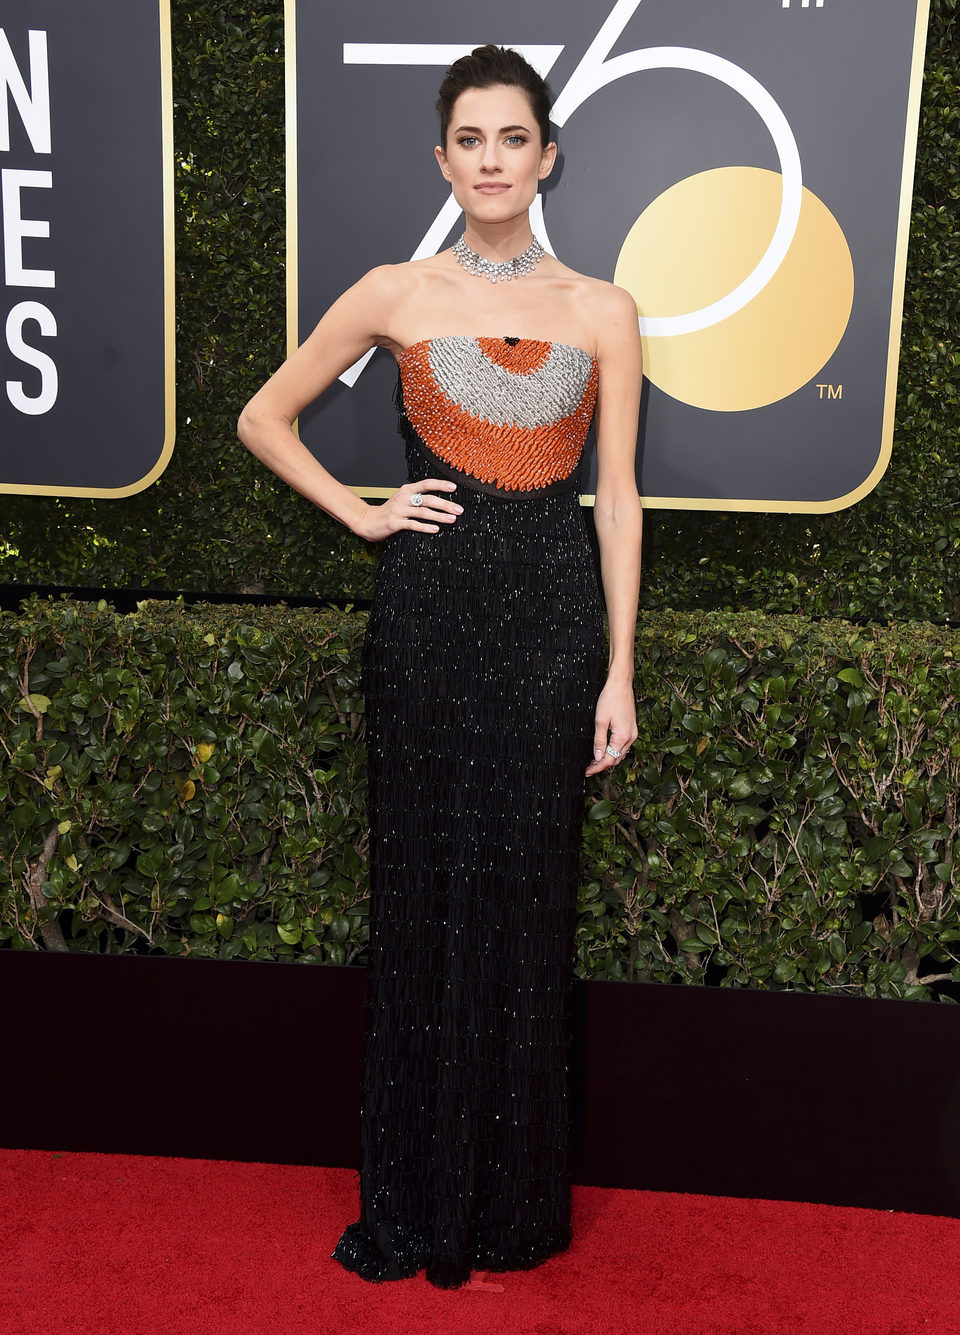 Allison Williams en la alfombra roja de los Globos de Oro 2018